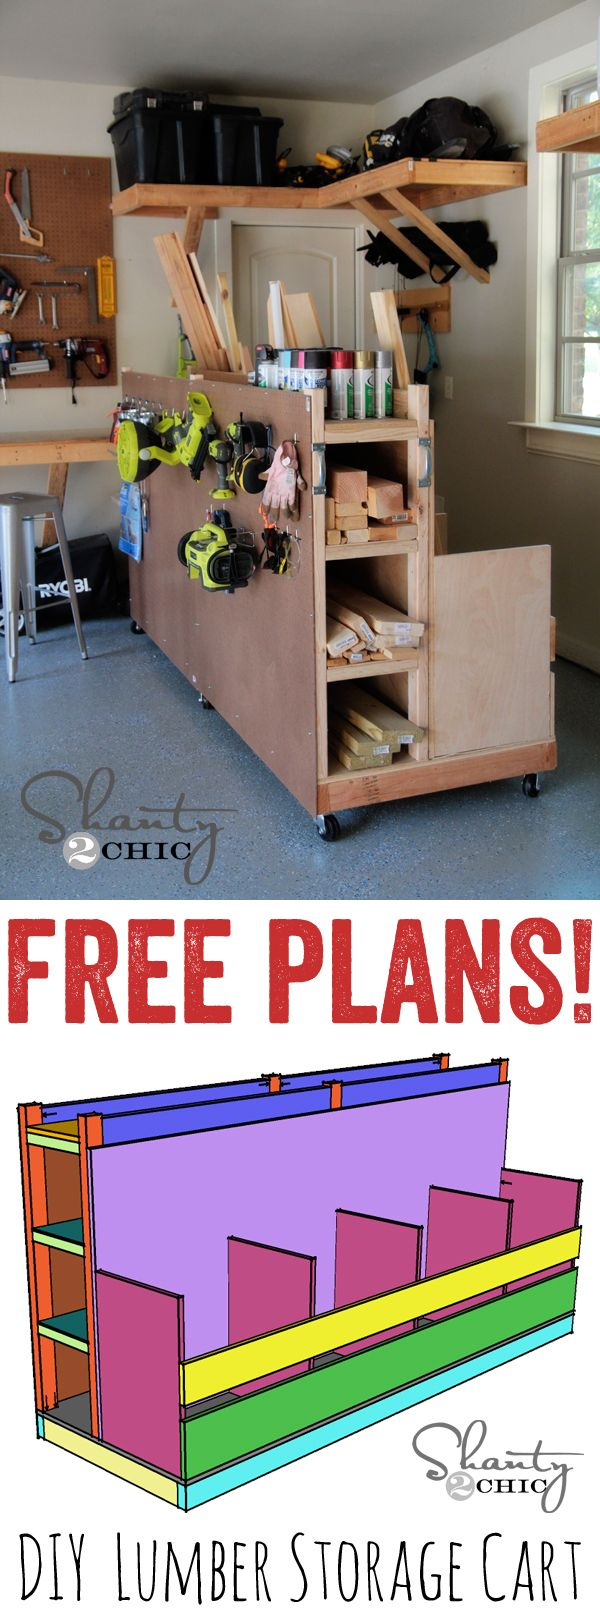 Diy projects your garage needs diy garage storage towers do it - Diy Lumber Storage Cart Free Plans I Need This In My Garage